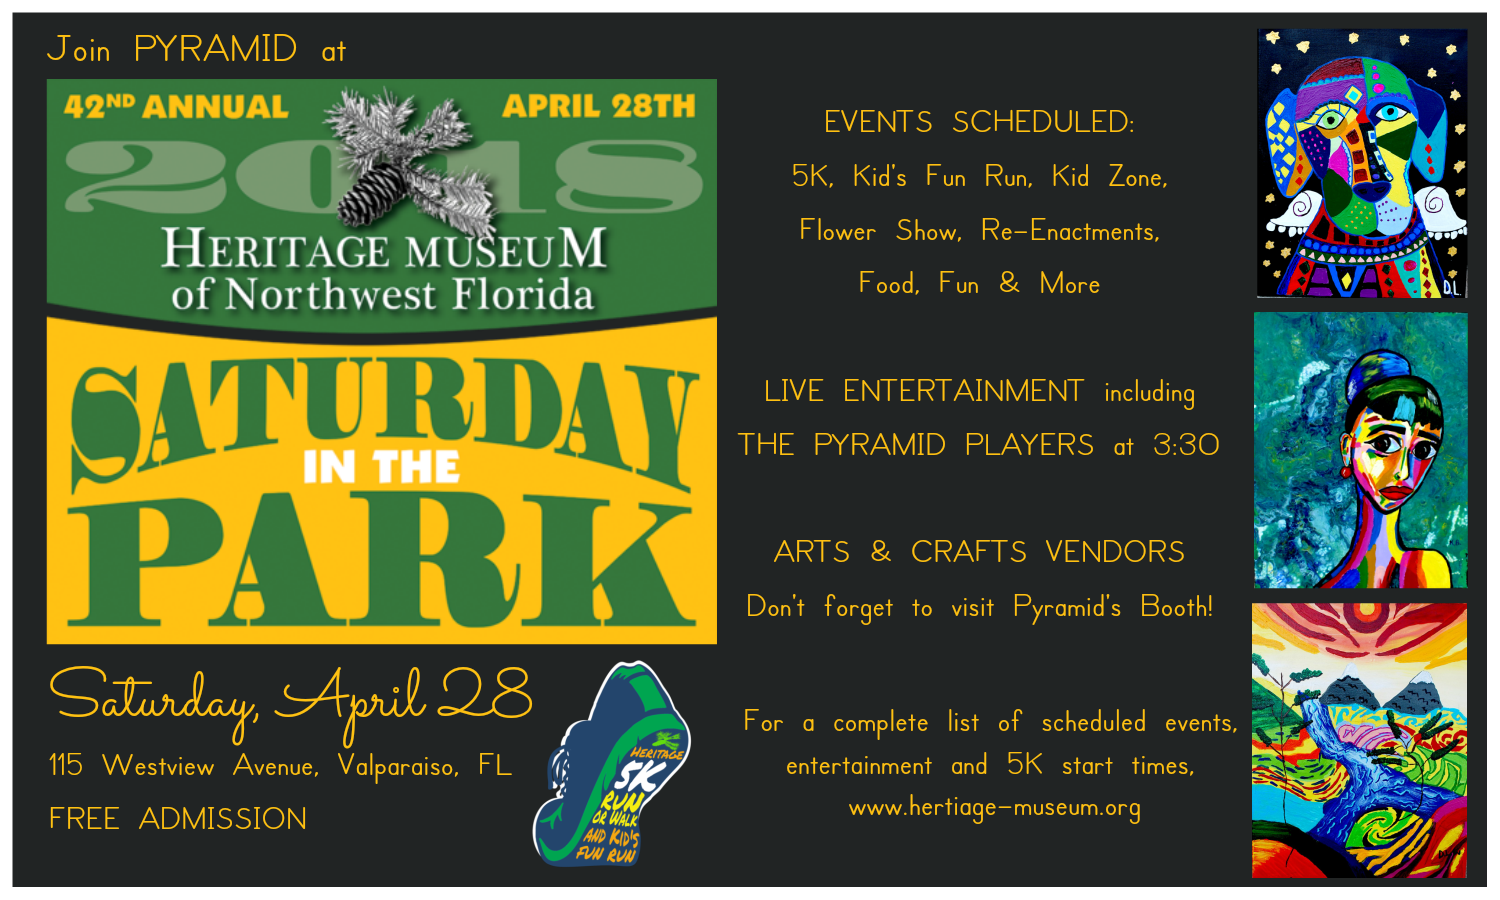 Saturday in the Park event flyer